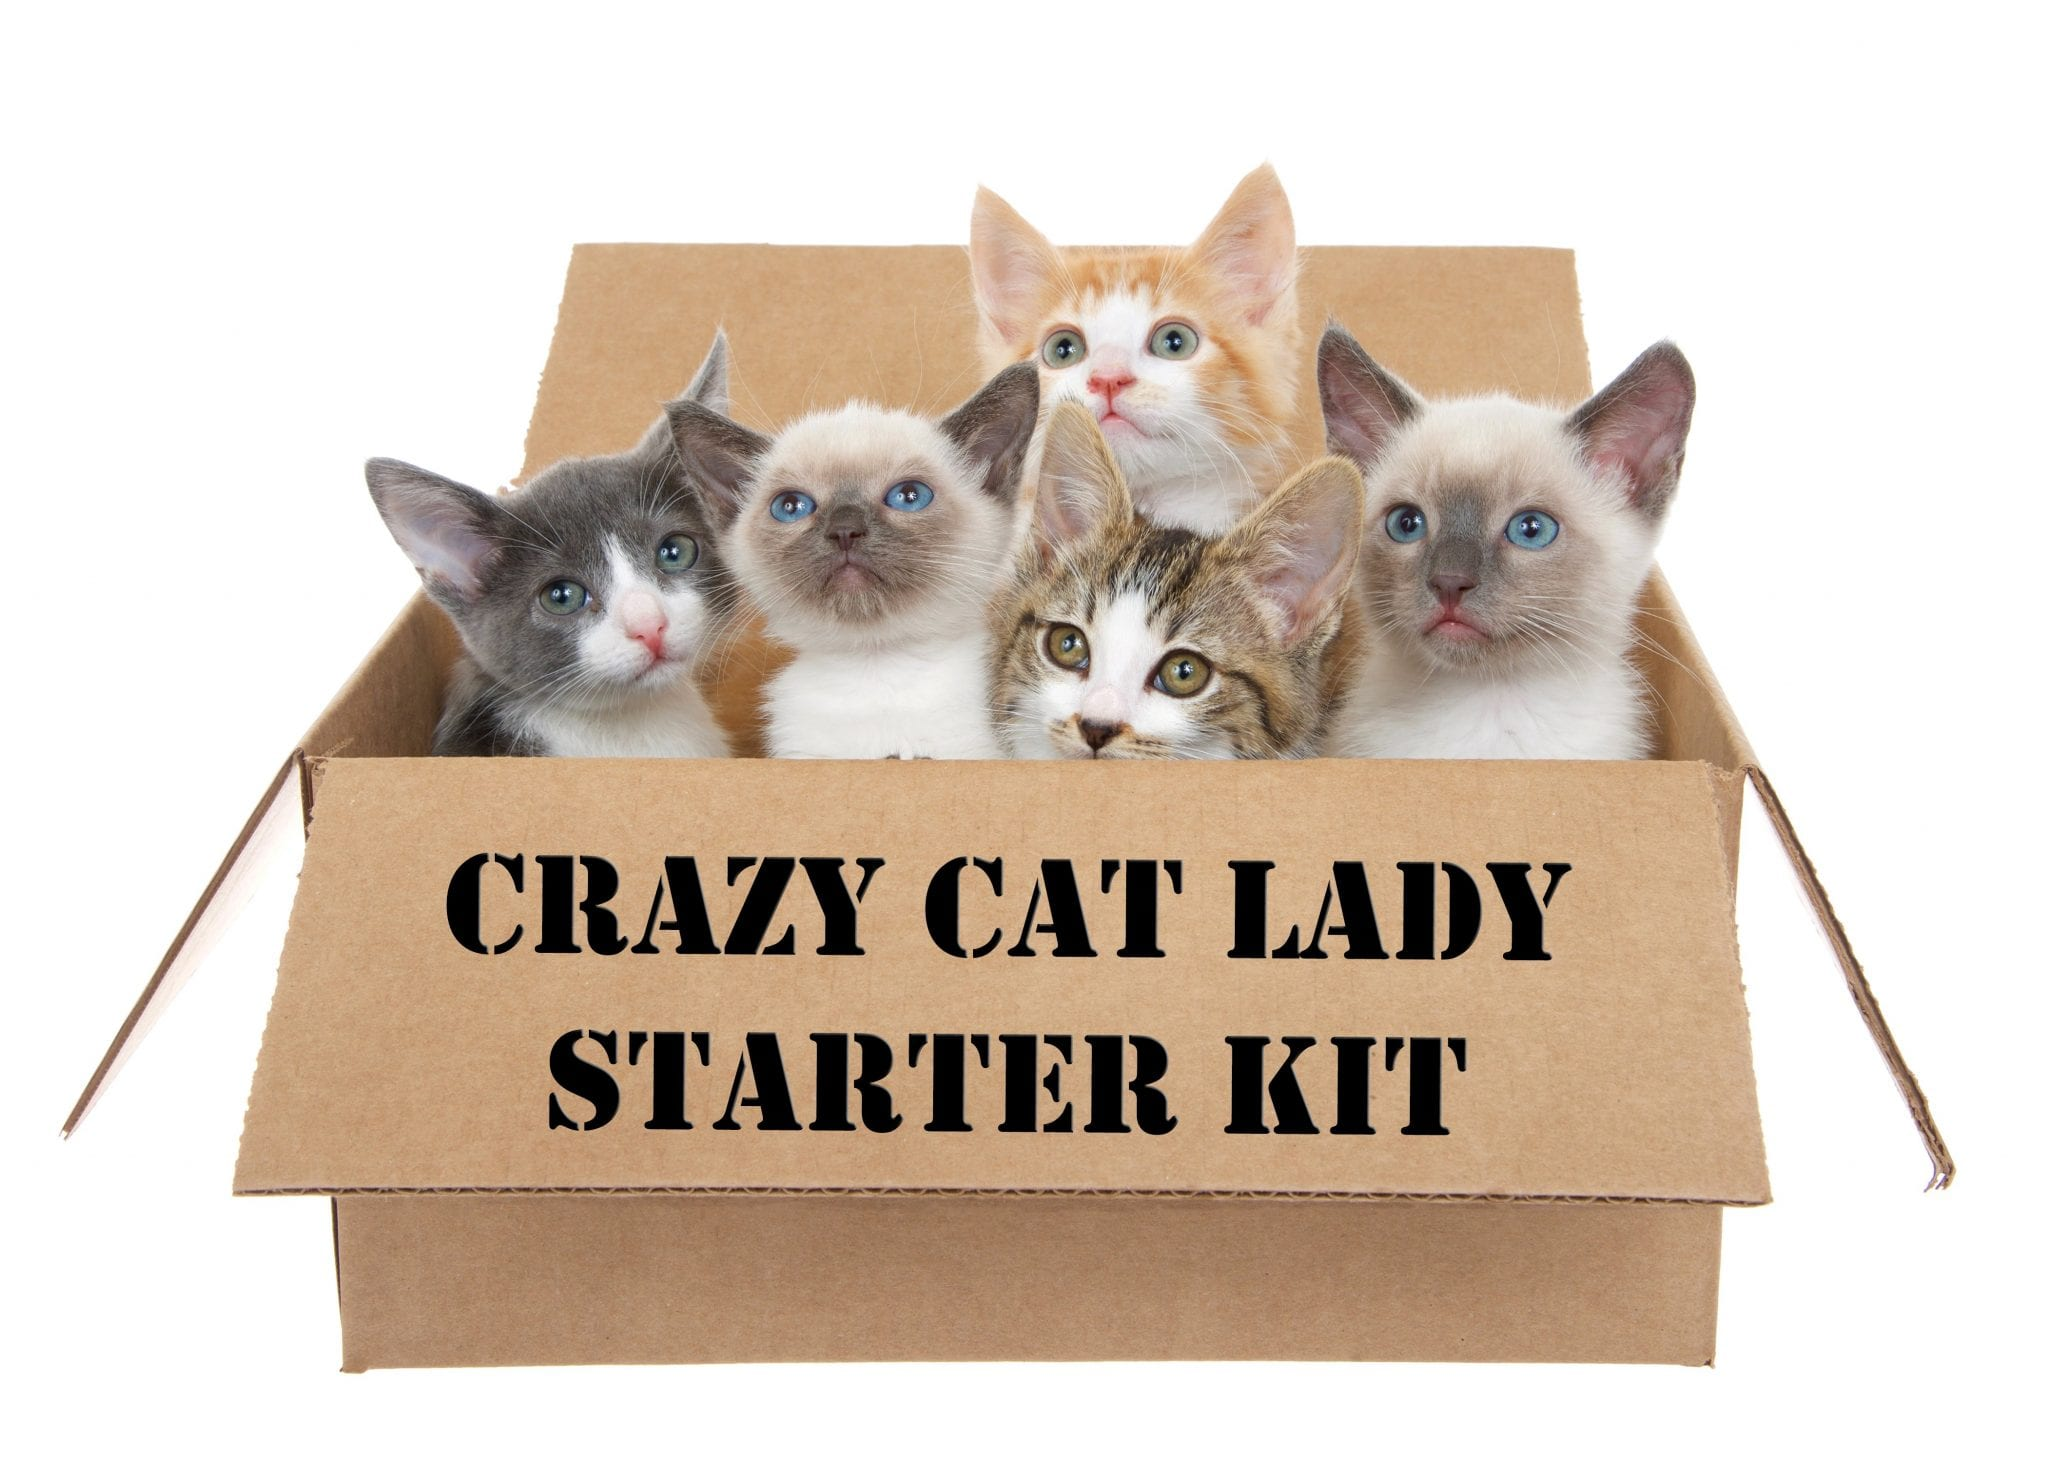 Stocking Stuffers & Gifts for the Crazy Cat Lady